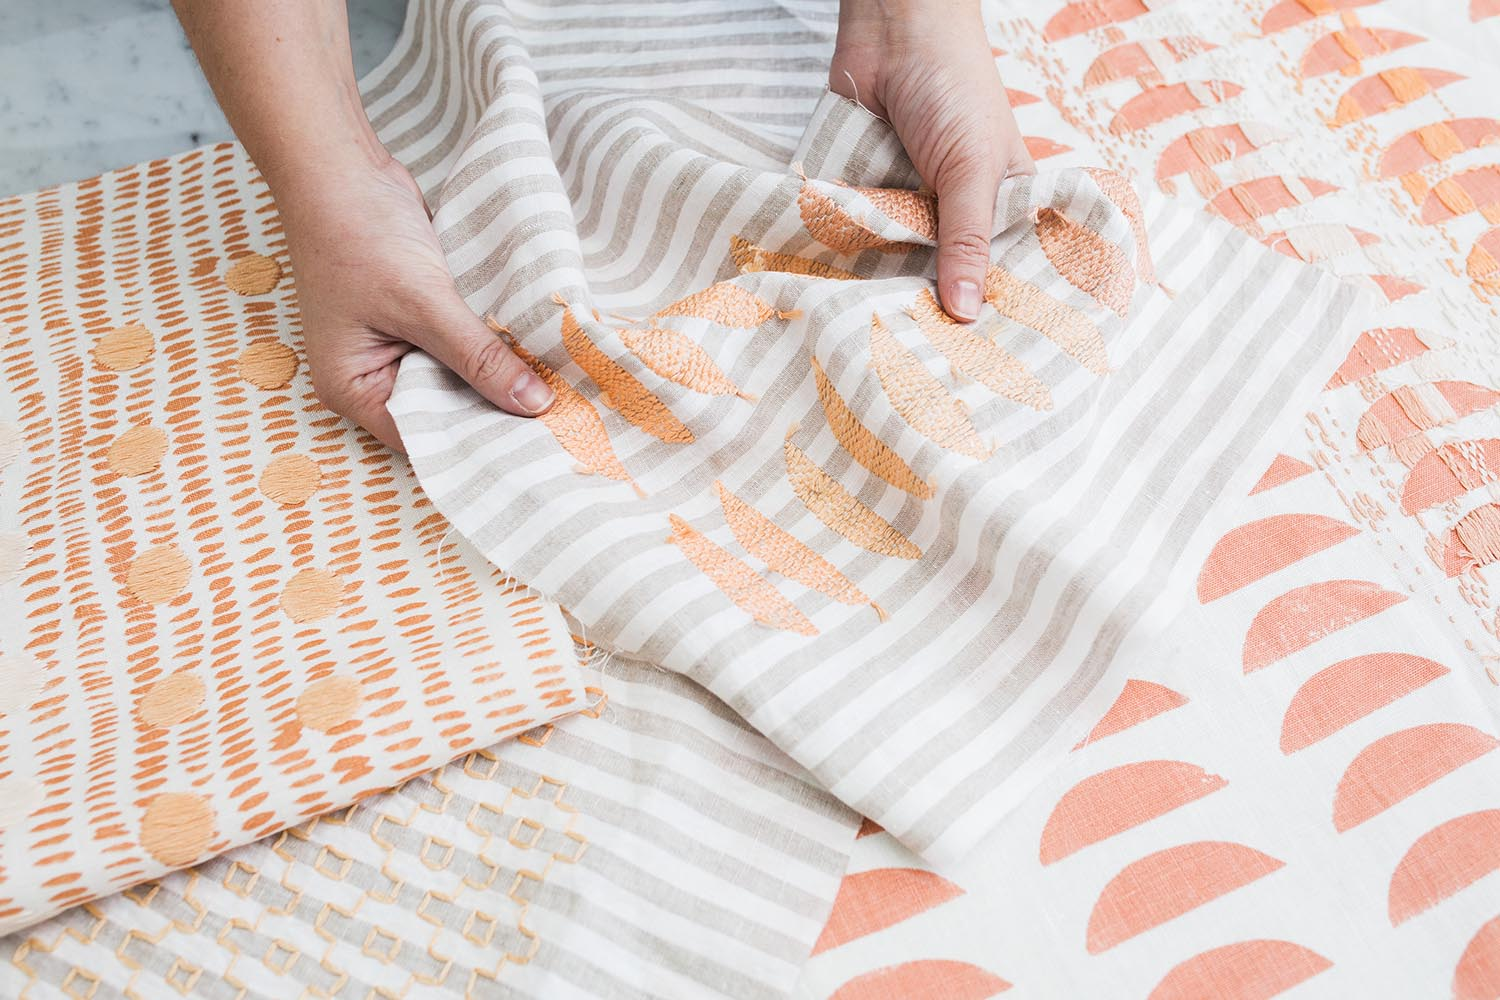 Rebecca Atwood + Sarah Laskow Collaboration - Hand Embroidered Pillows in Tangerine and Taupe